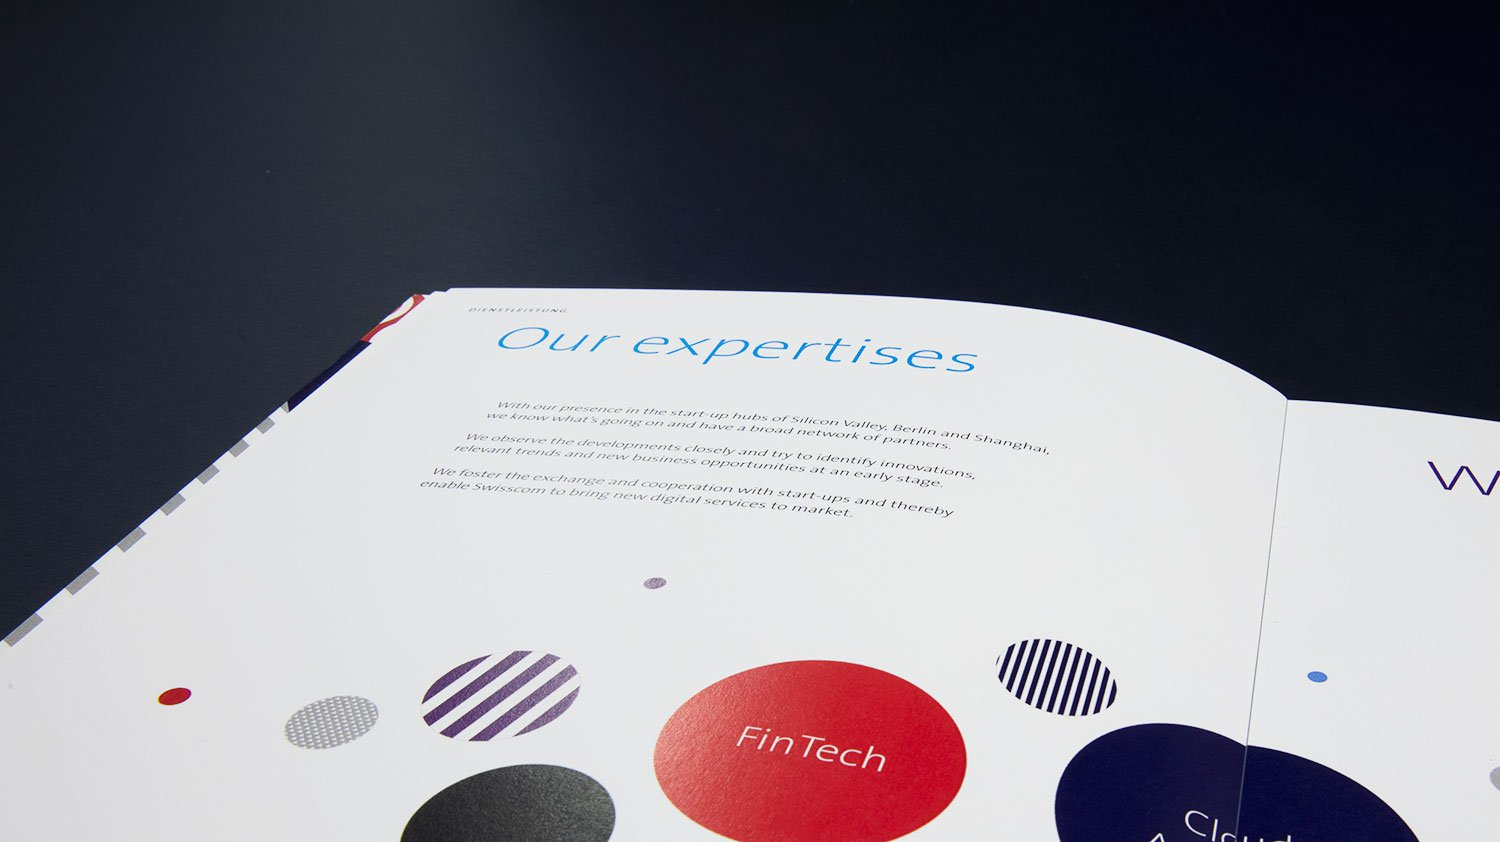 Swisscom outpost infographic design